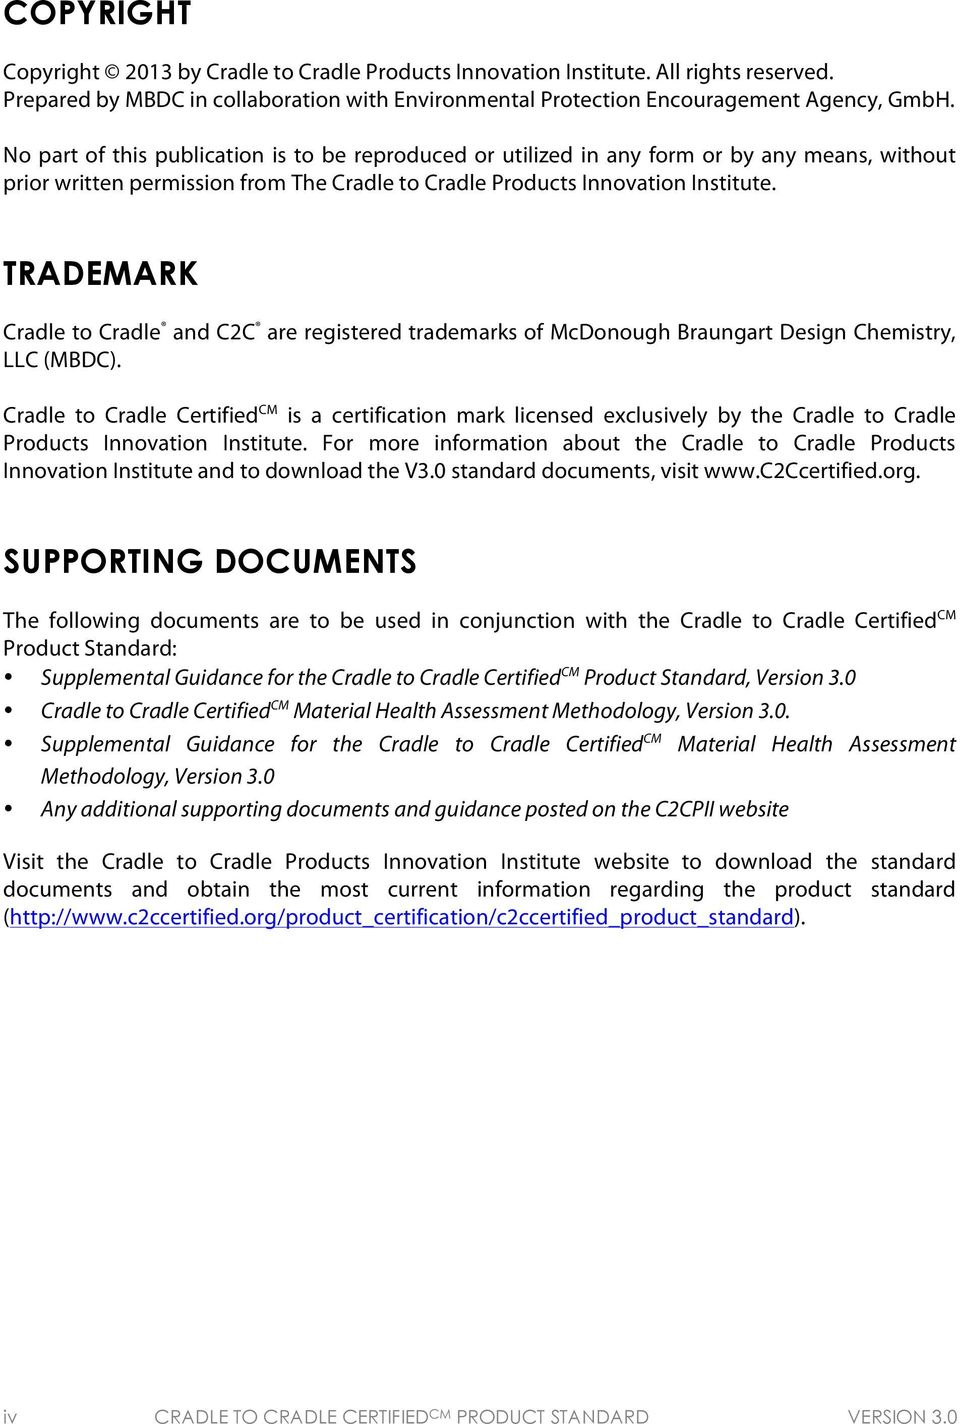 TRADEMARK Cradle to Cradle and C2C are registered trademarks of McDonough Braungart Design Chemistry, LLC (MBDC).